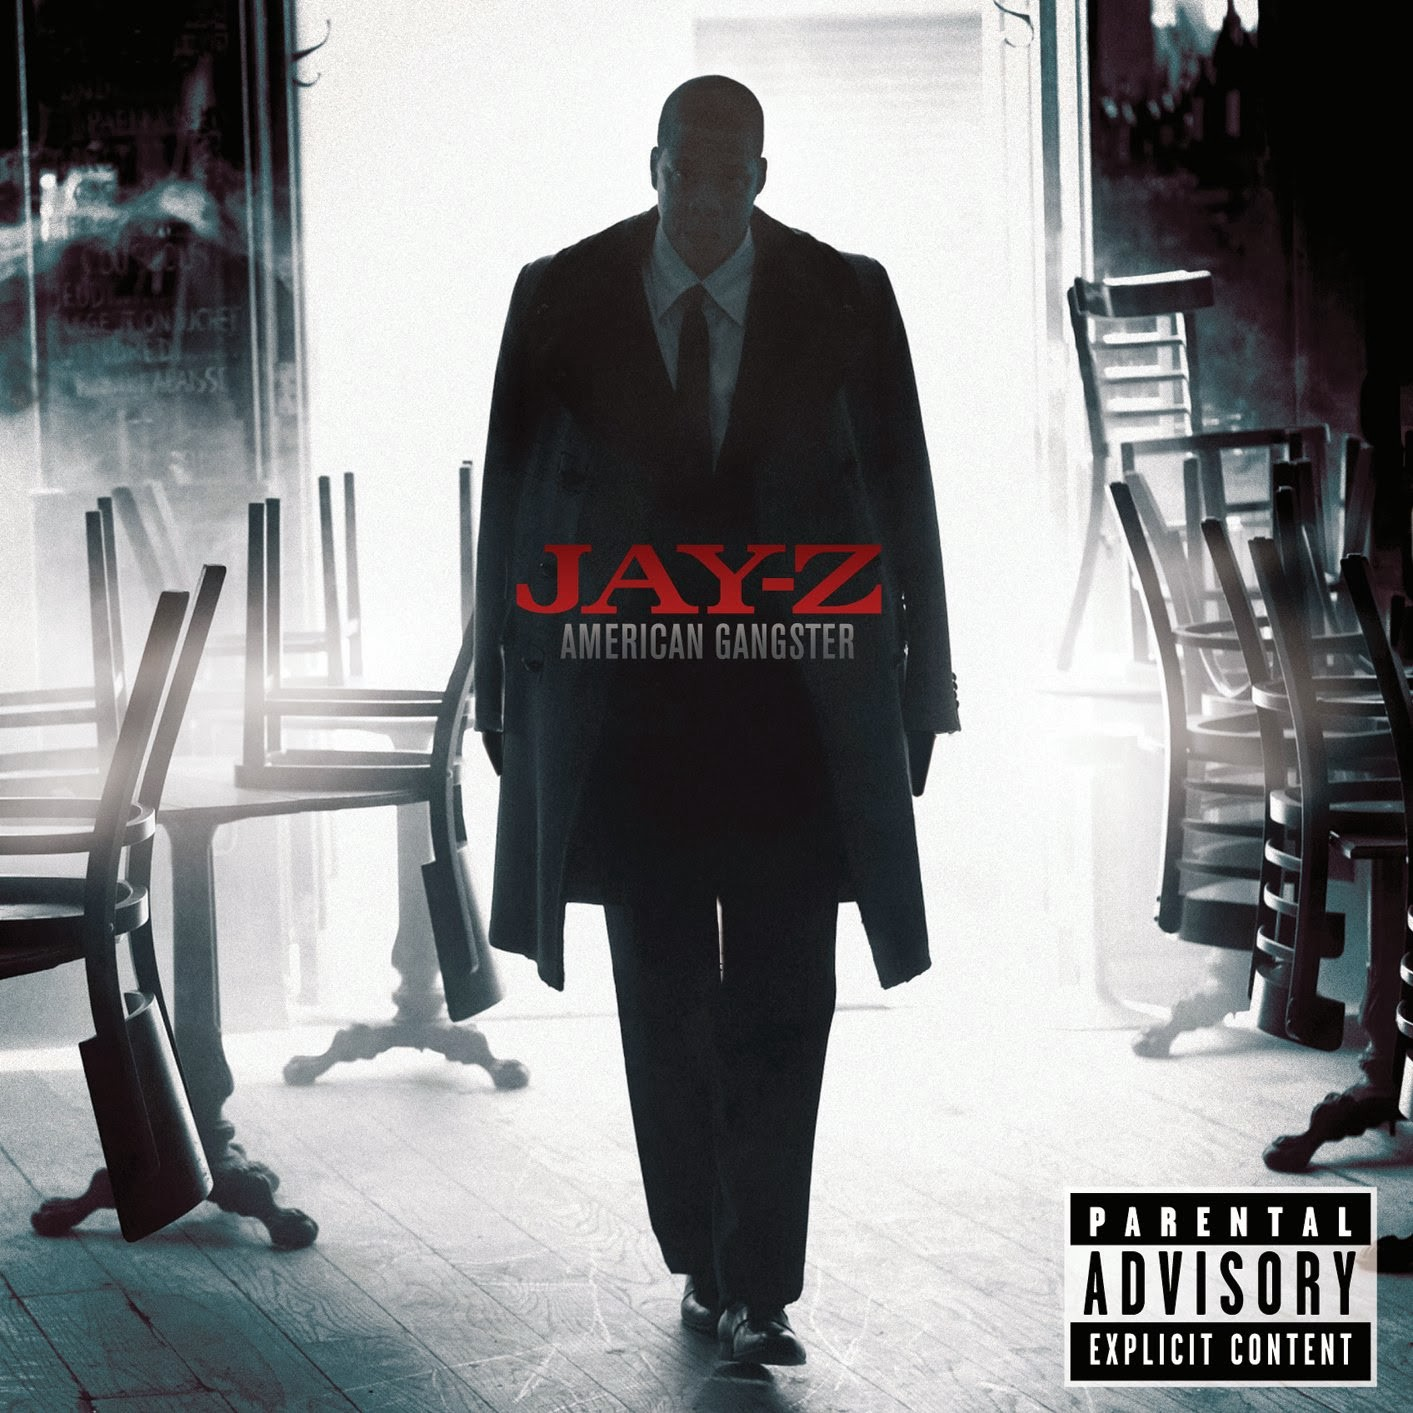 In defense of jay zs american gangster the passion of while the music evokes the 70s the lyrics and flows call to mind mid 90s ja z when his name had an umlaut and his ambition was insatiable malvernweather Choice Image